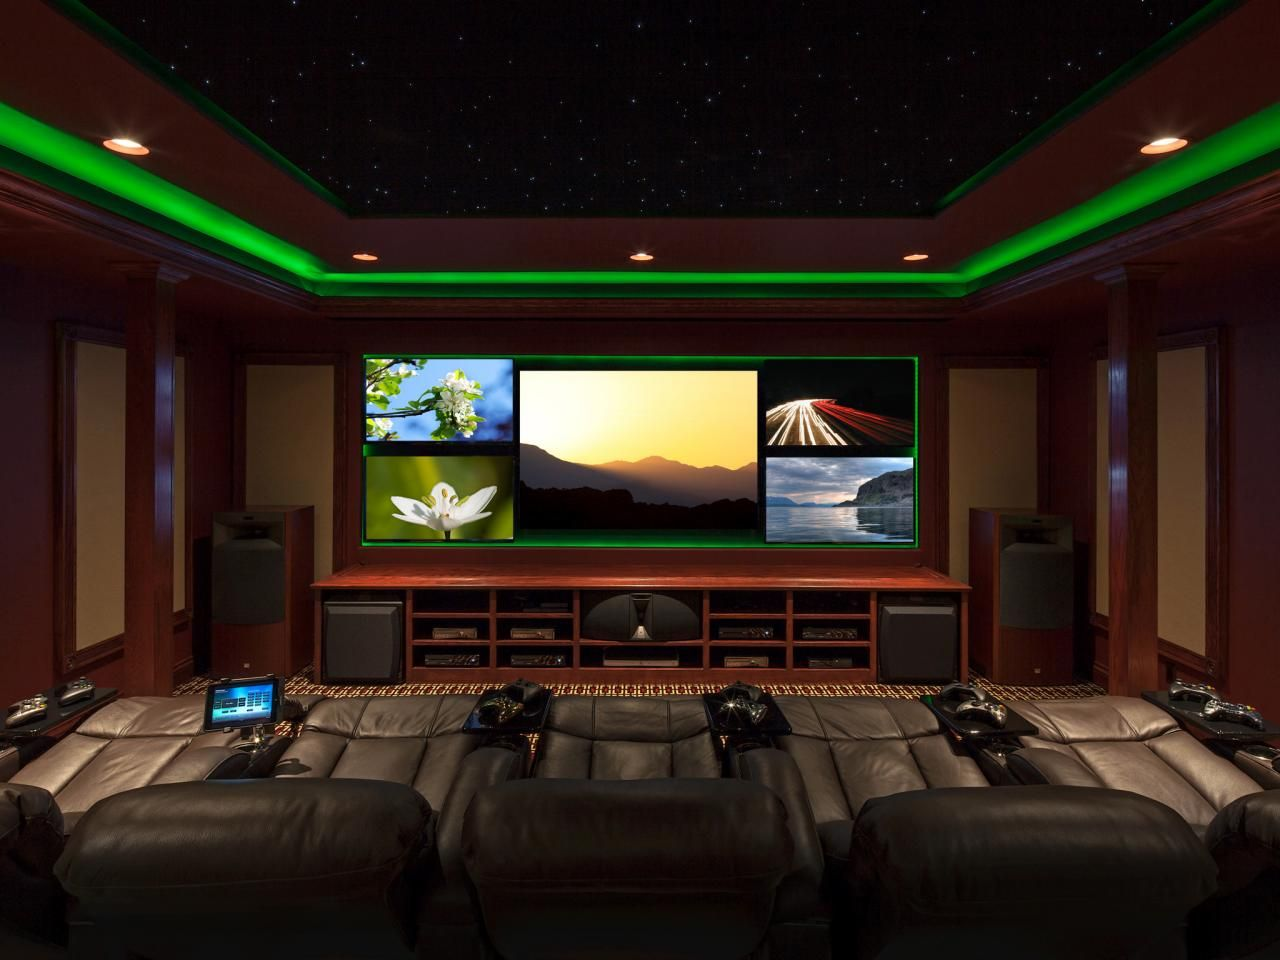 game room lighting ideas. 47 epic video game room decoration ideas for 2017 lighting i